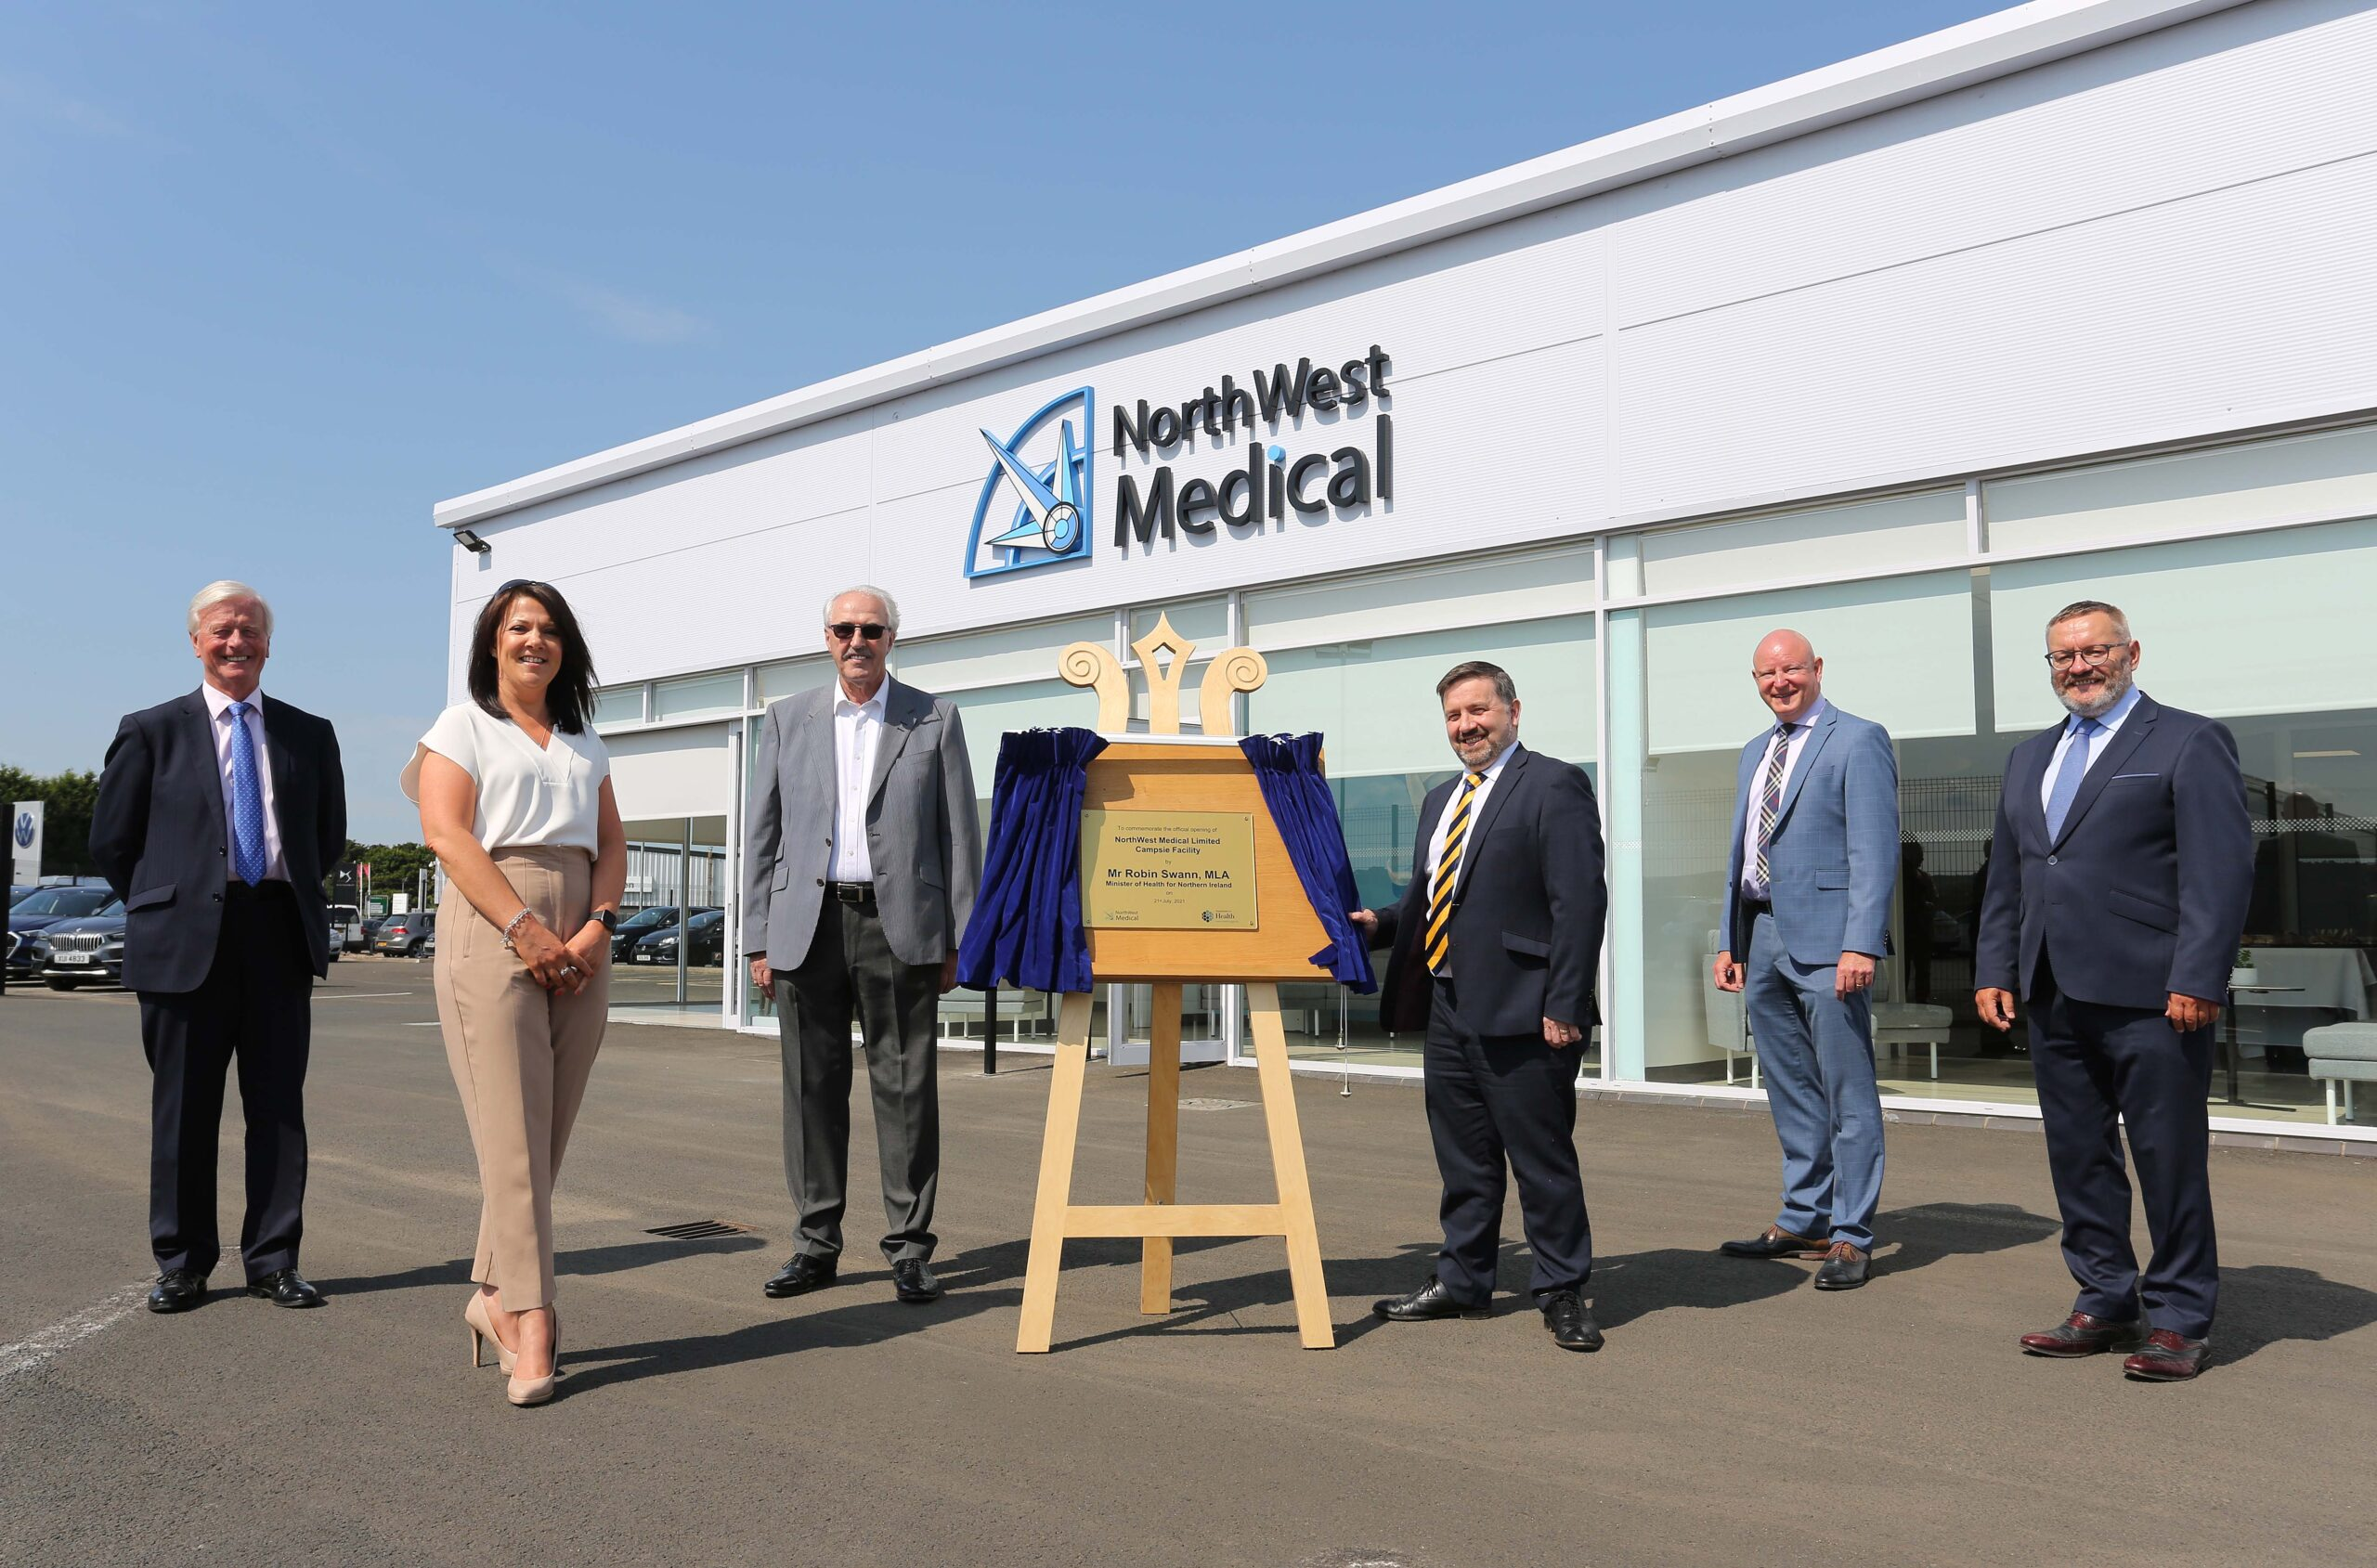 Swann opens PPE manufacturing facility - Newry Times - down newspaper